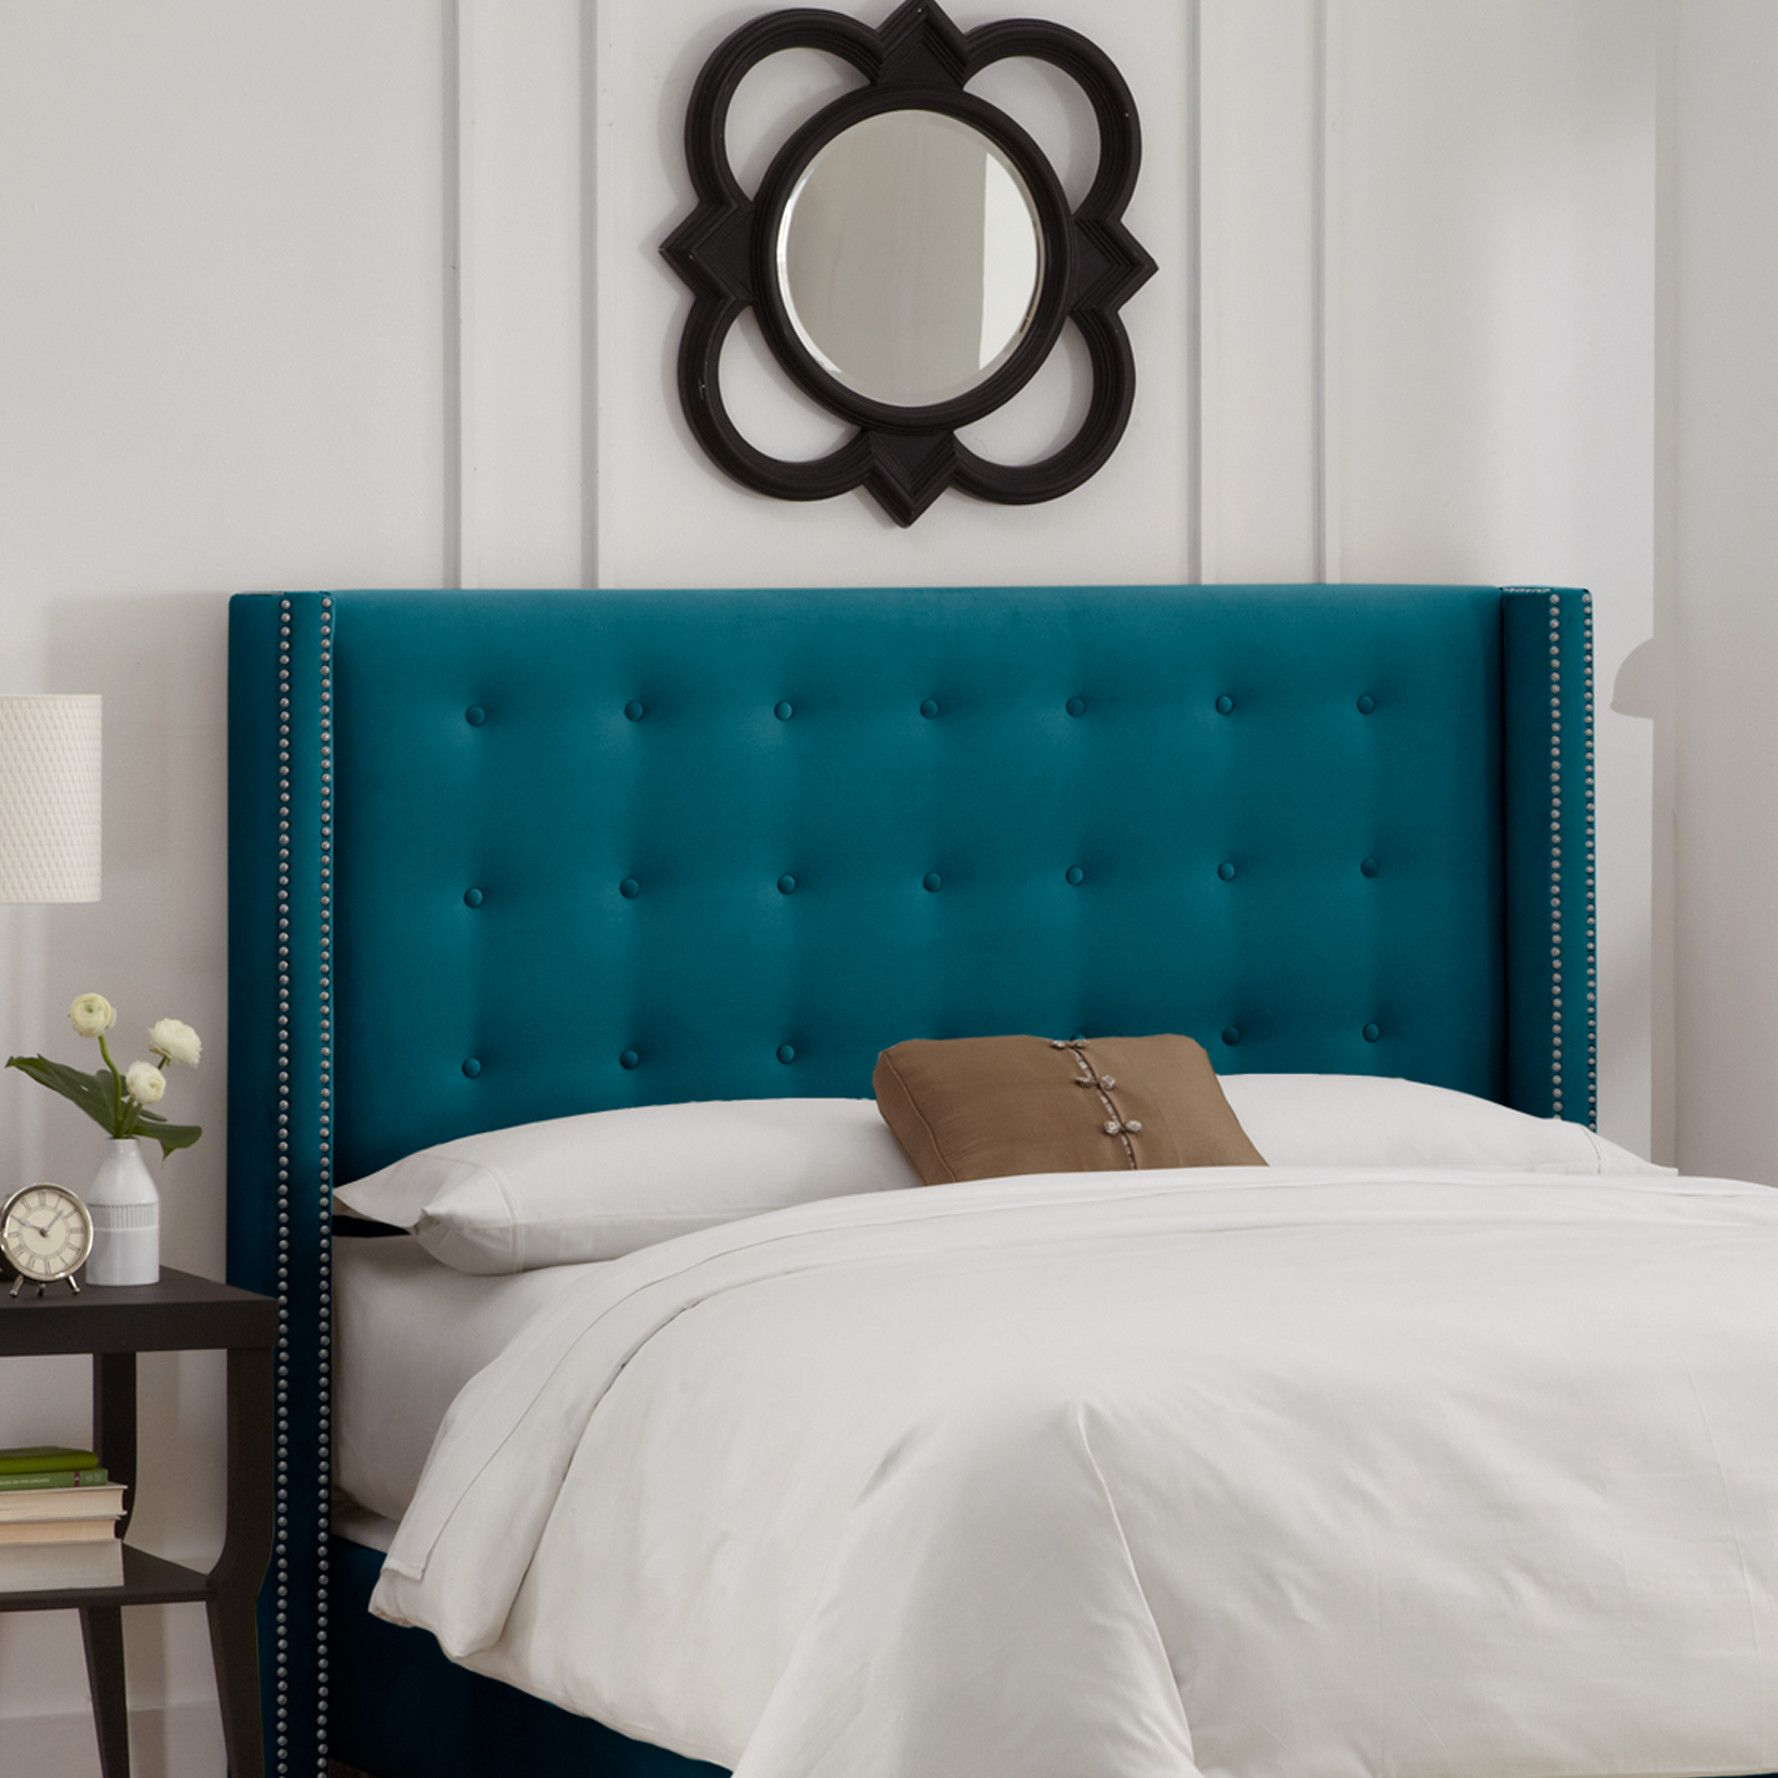 queen full dining coffee bed pictures inspirations also living outstanding abingdon db table size velvet headboard bench tall navy safavieh gallery cory upholstered trends including tufted blue bd stunning of handy ideas